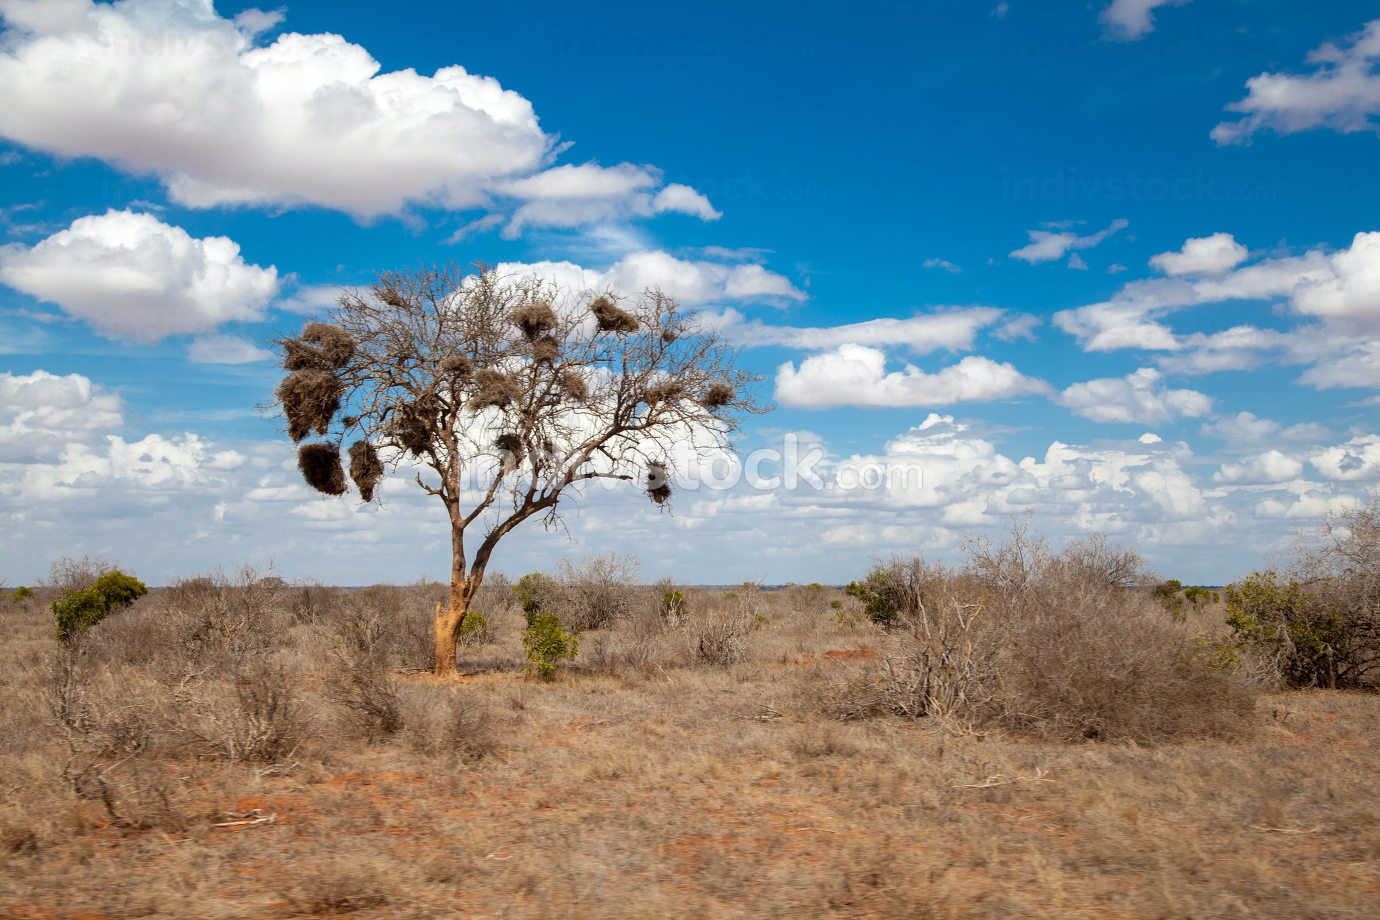 Big tree with nests of birds, blue sky and clouds, Kenya